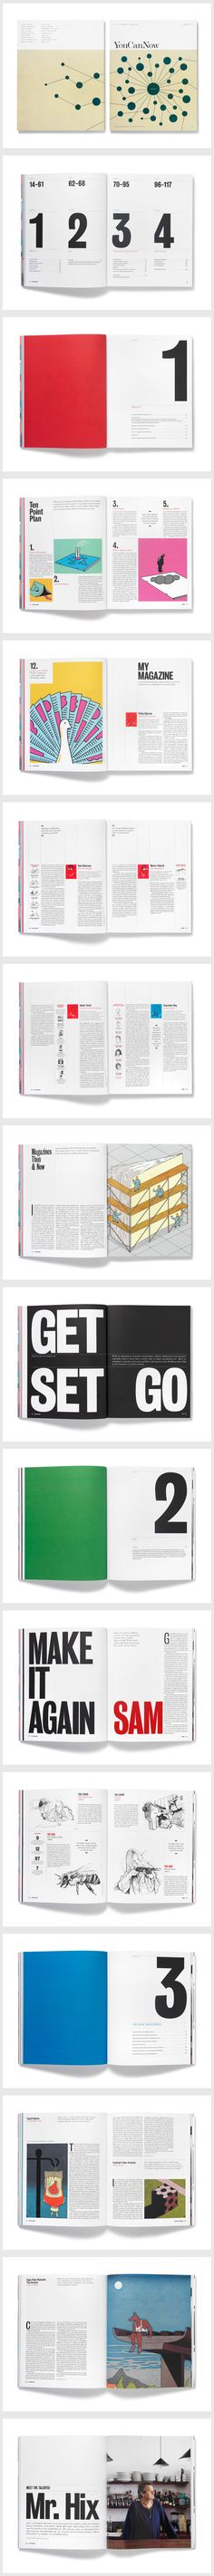 print (book, magazine, newspaper, brochure) + typography + editorial + layout + design |